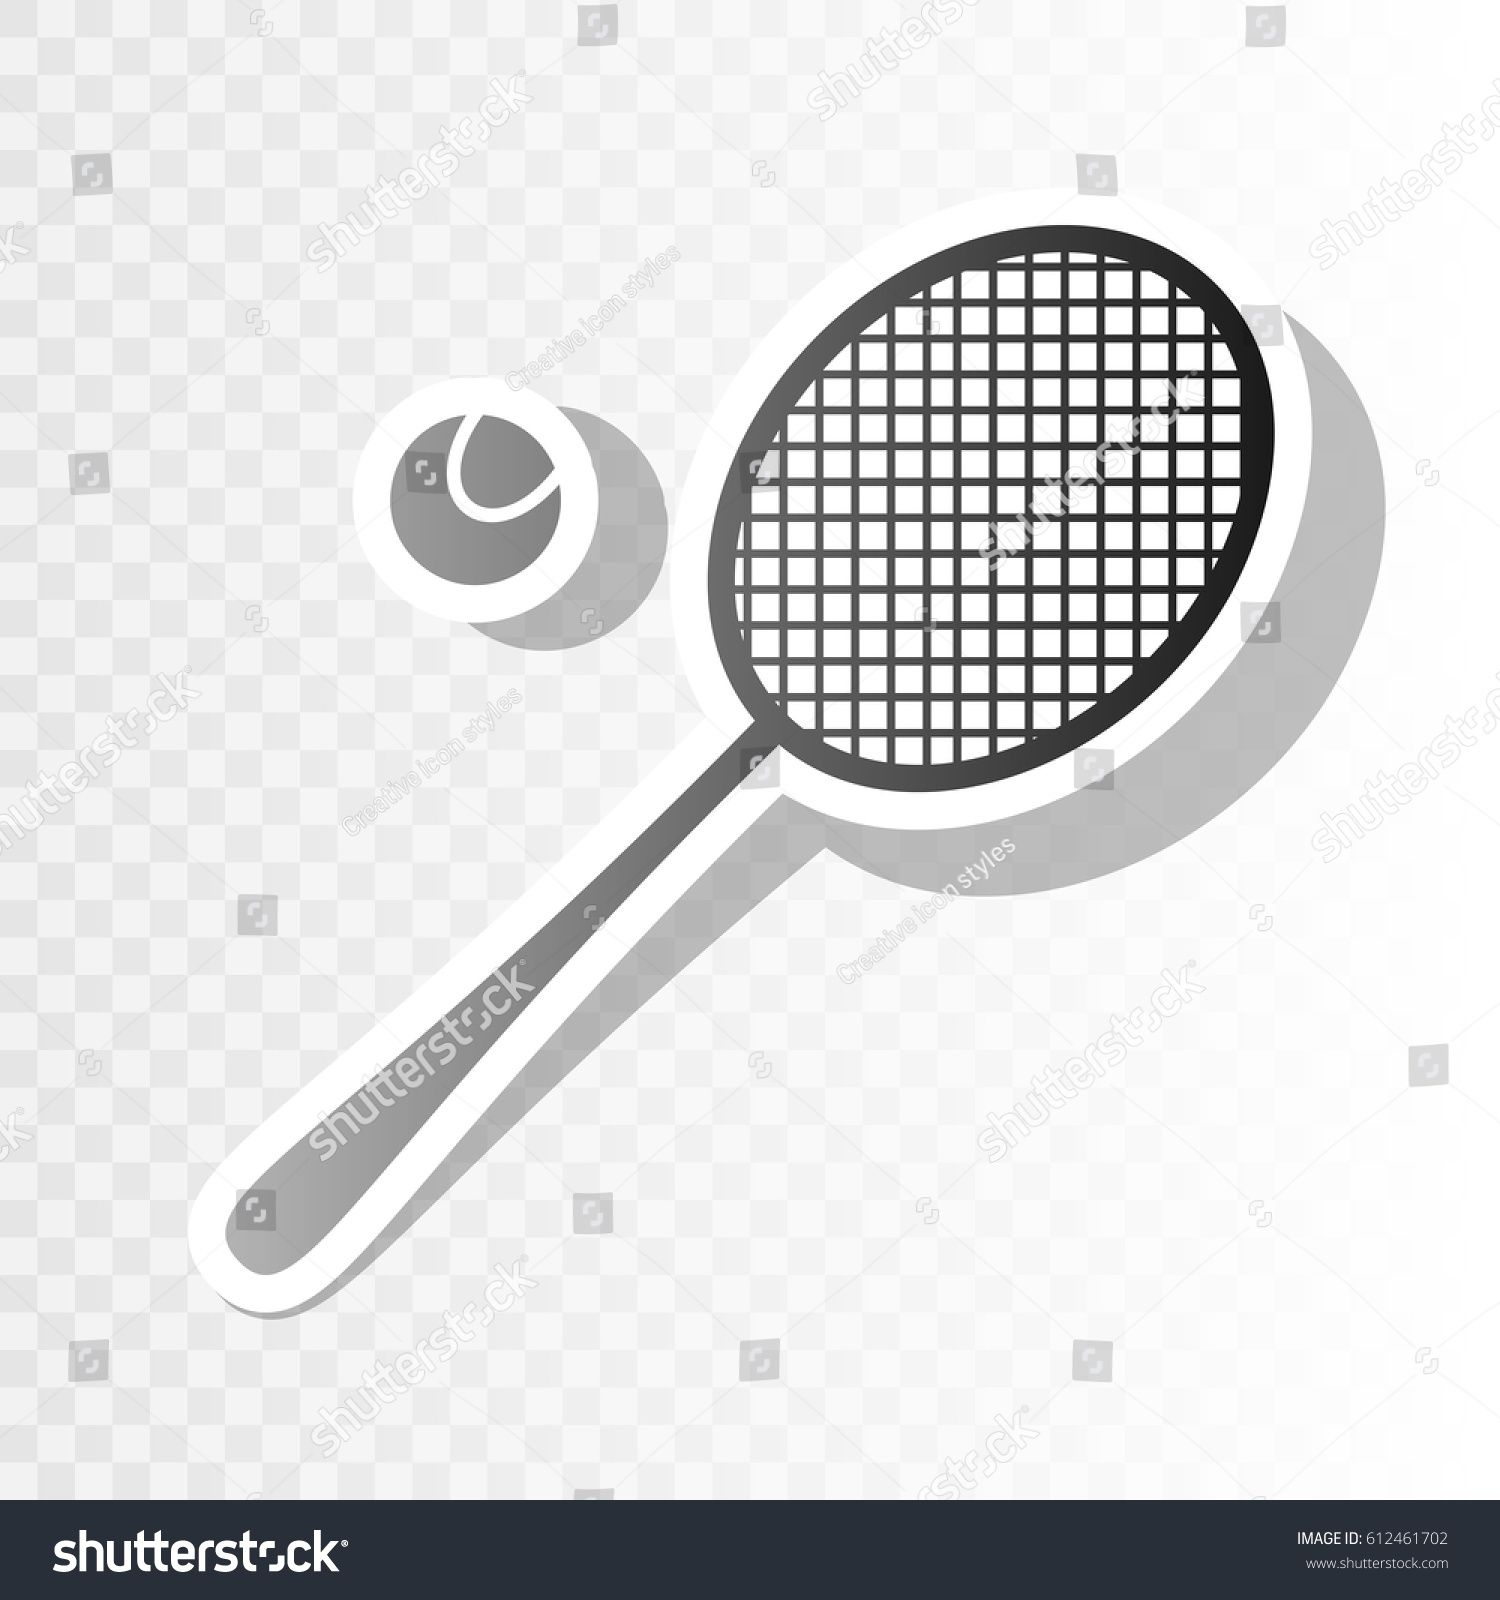 Tennis Racquet Sign Vector Blackish Icon On Transparent Background With Transition Ad In 2020 Website Template Design Template Design Responsive Website Template